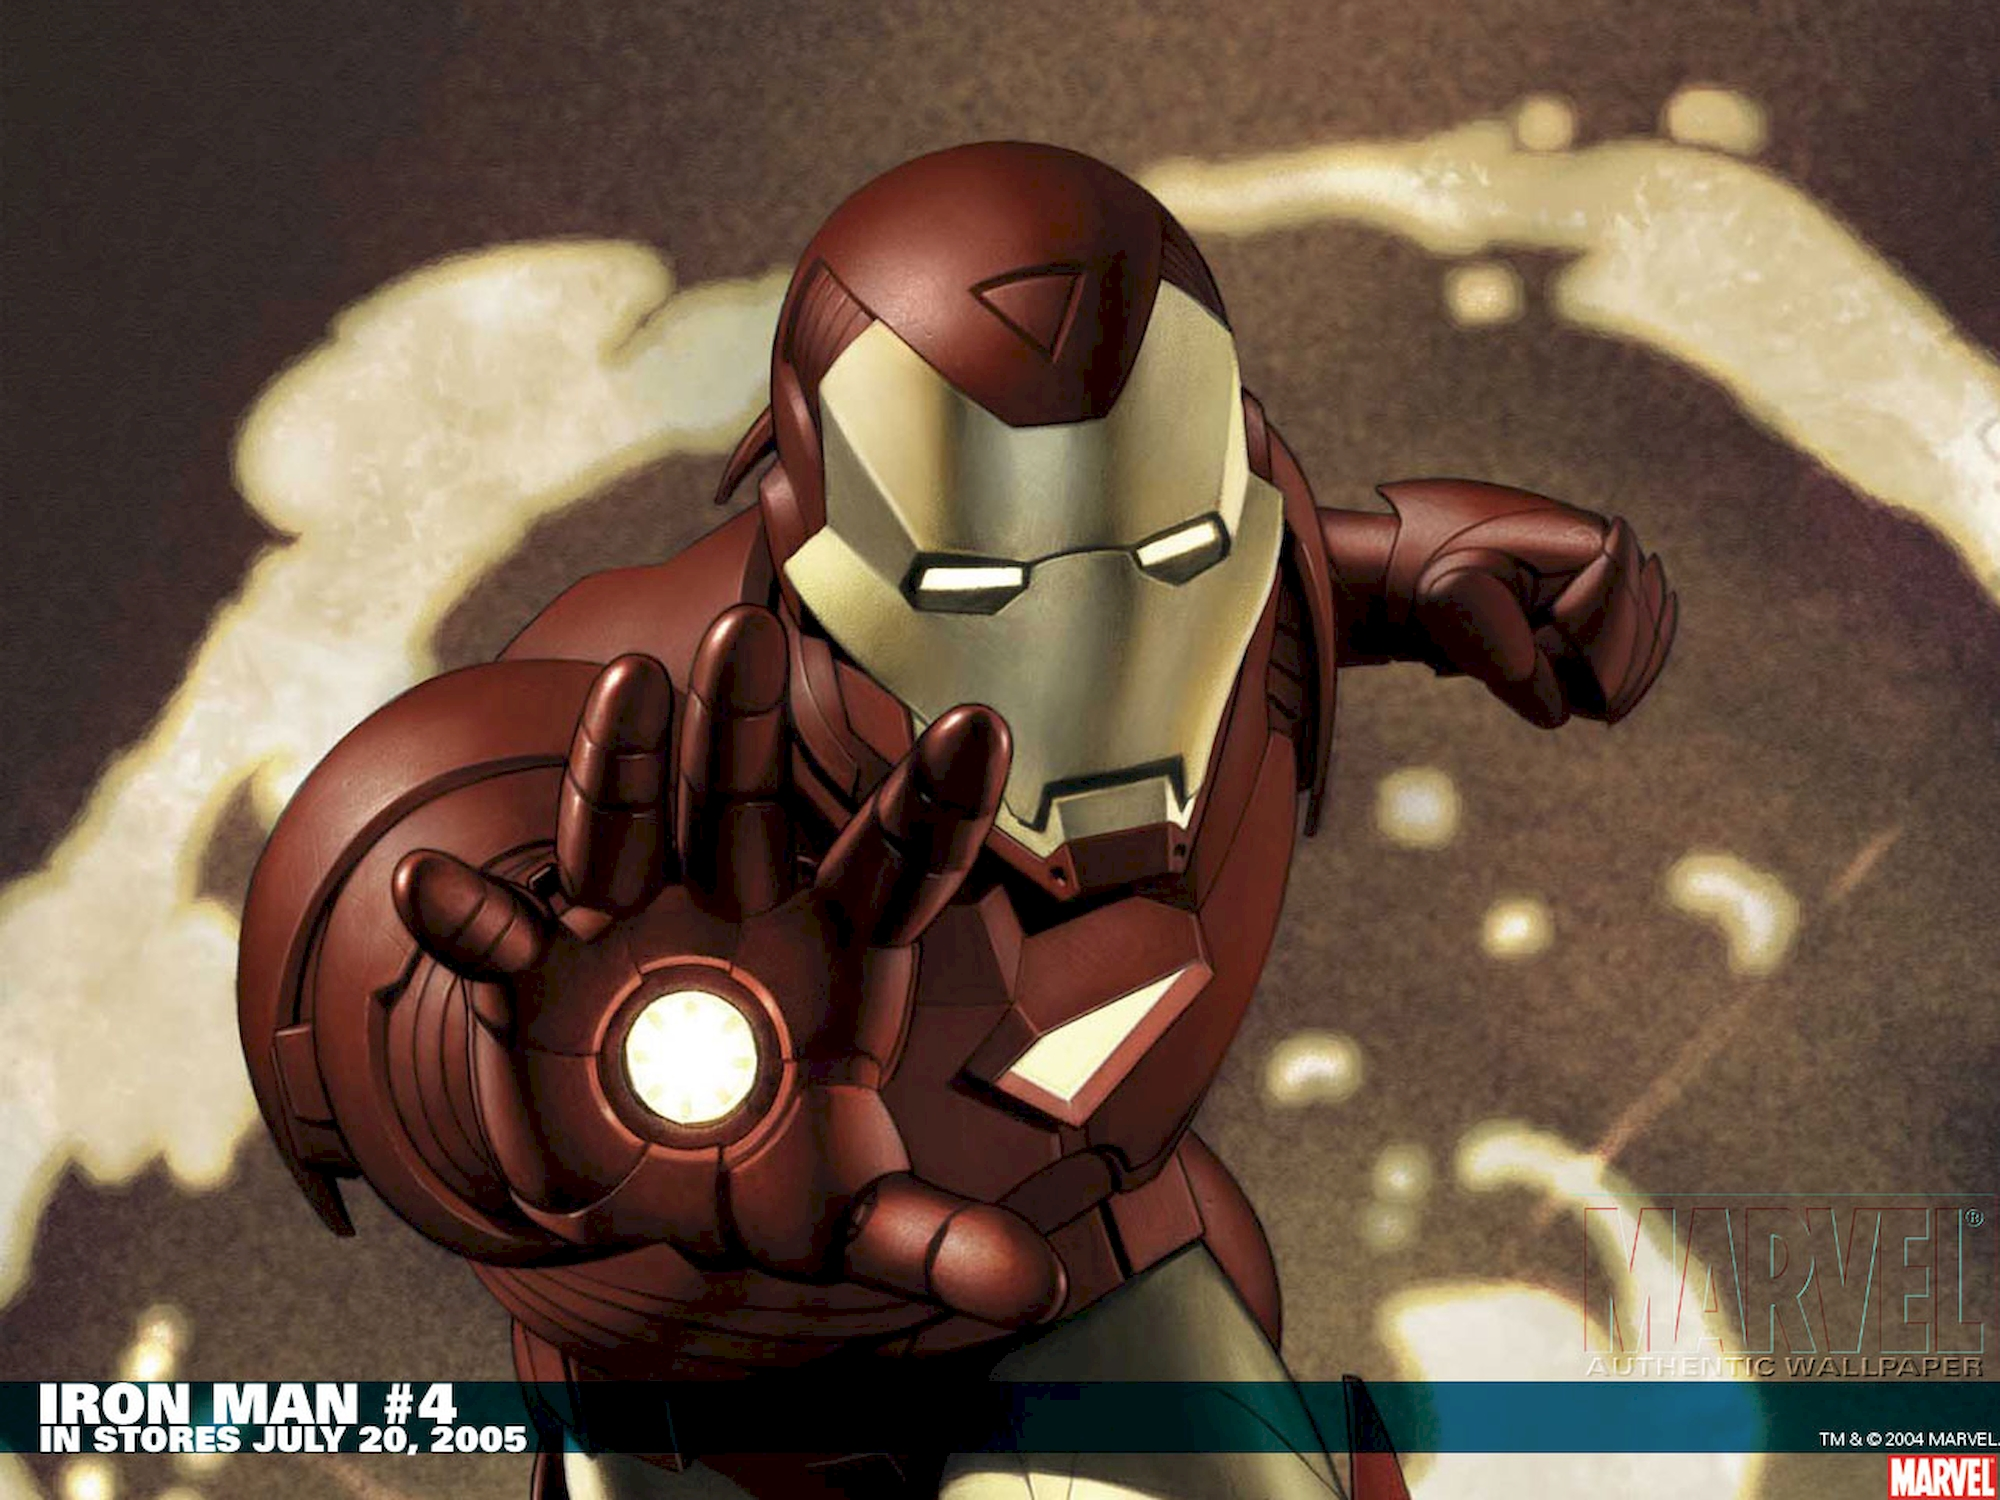 iron-man-4-heros-marvel